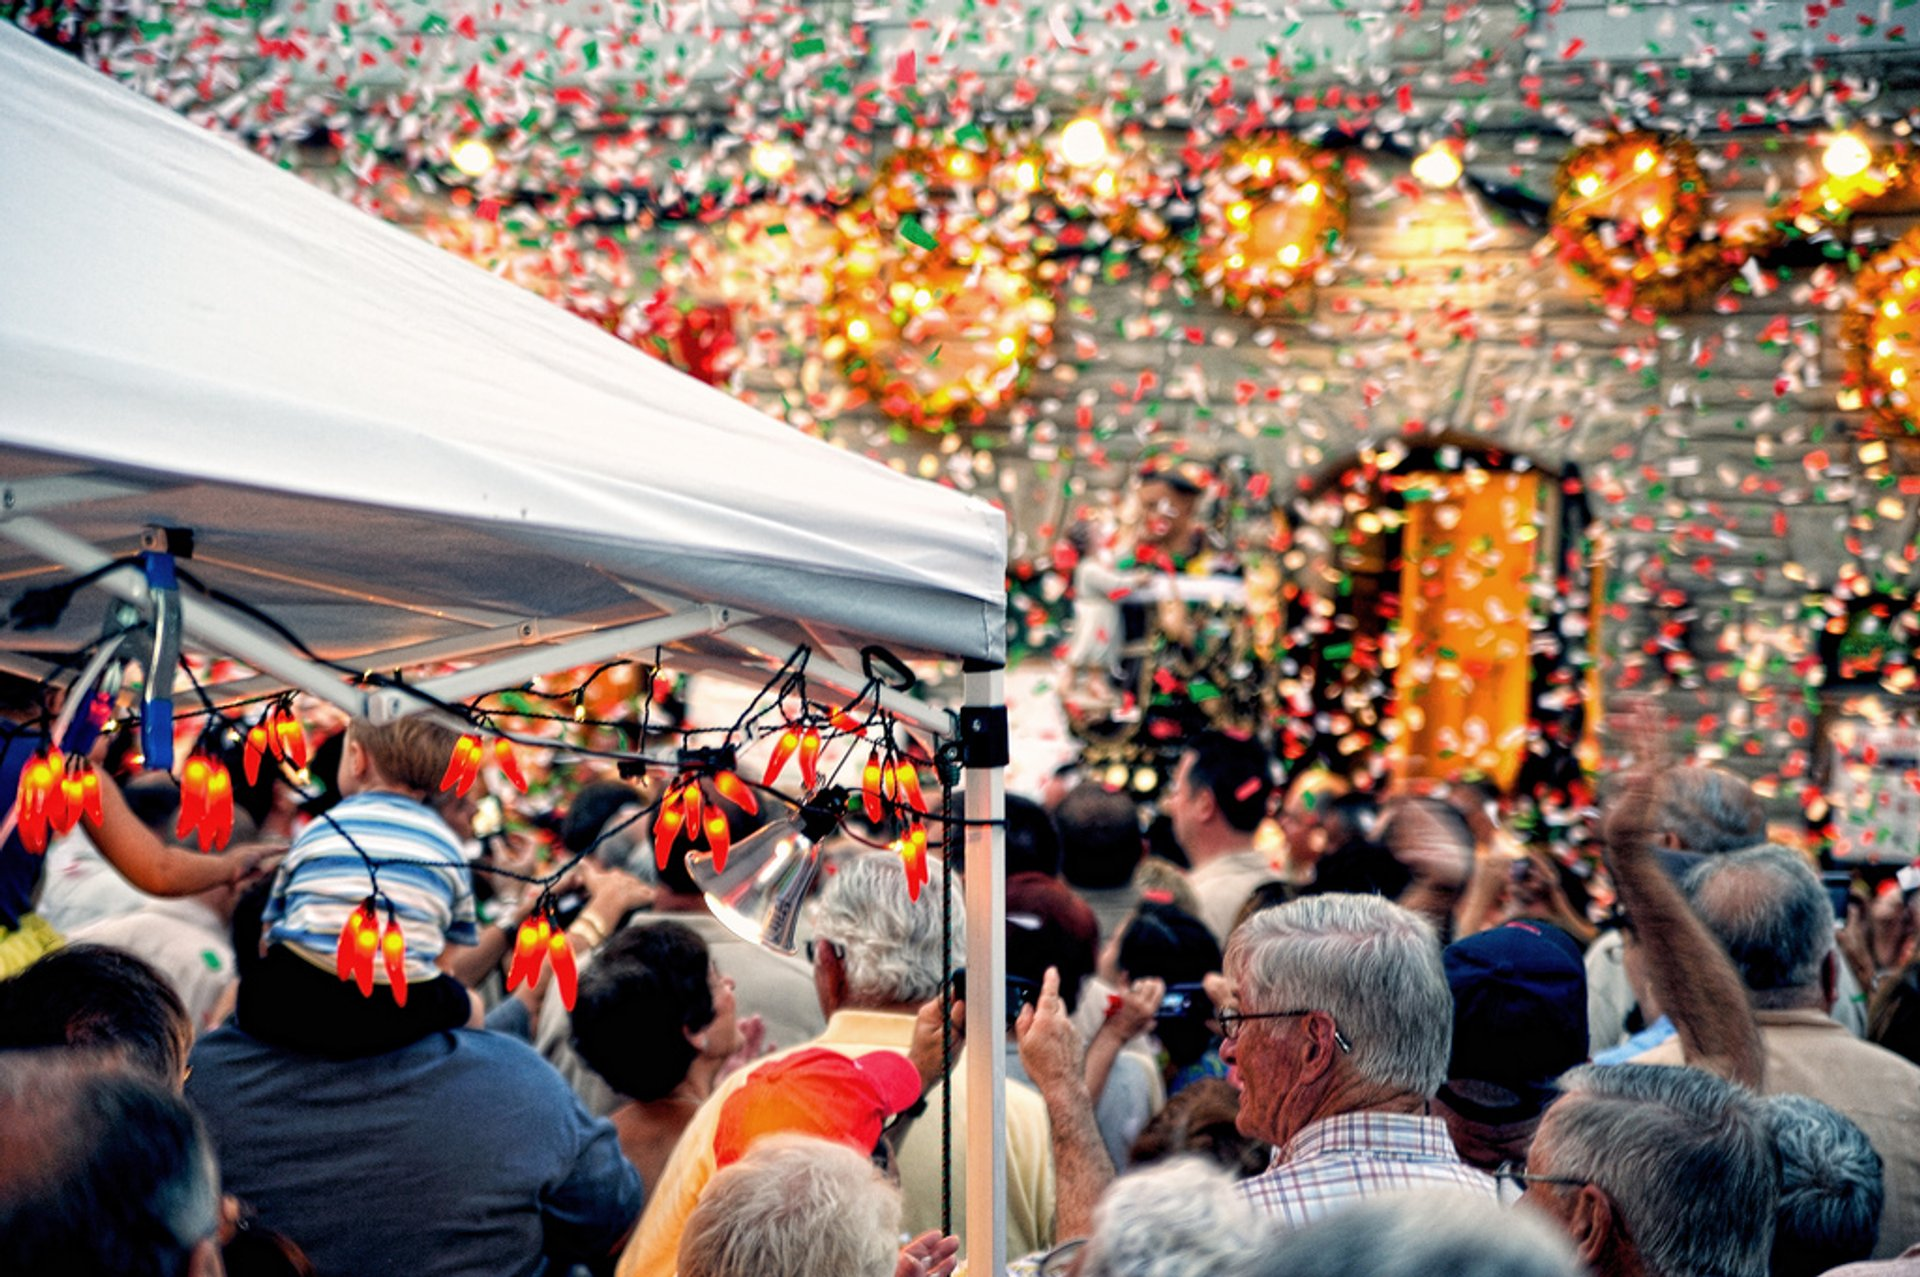 St Anthony Feast in Boston - Best Season 2020